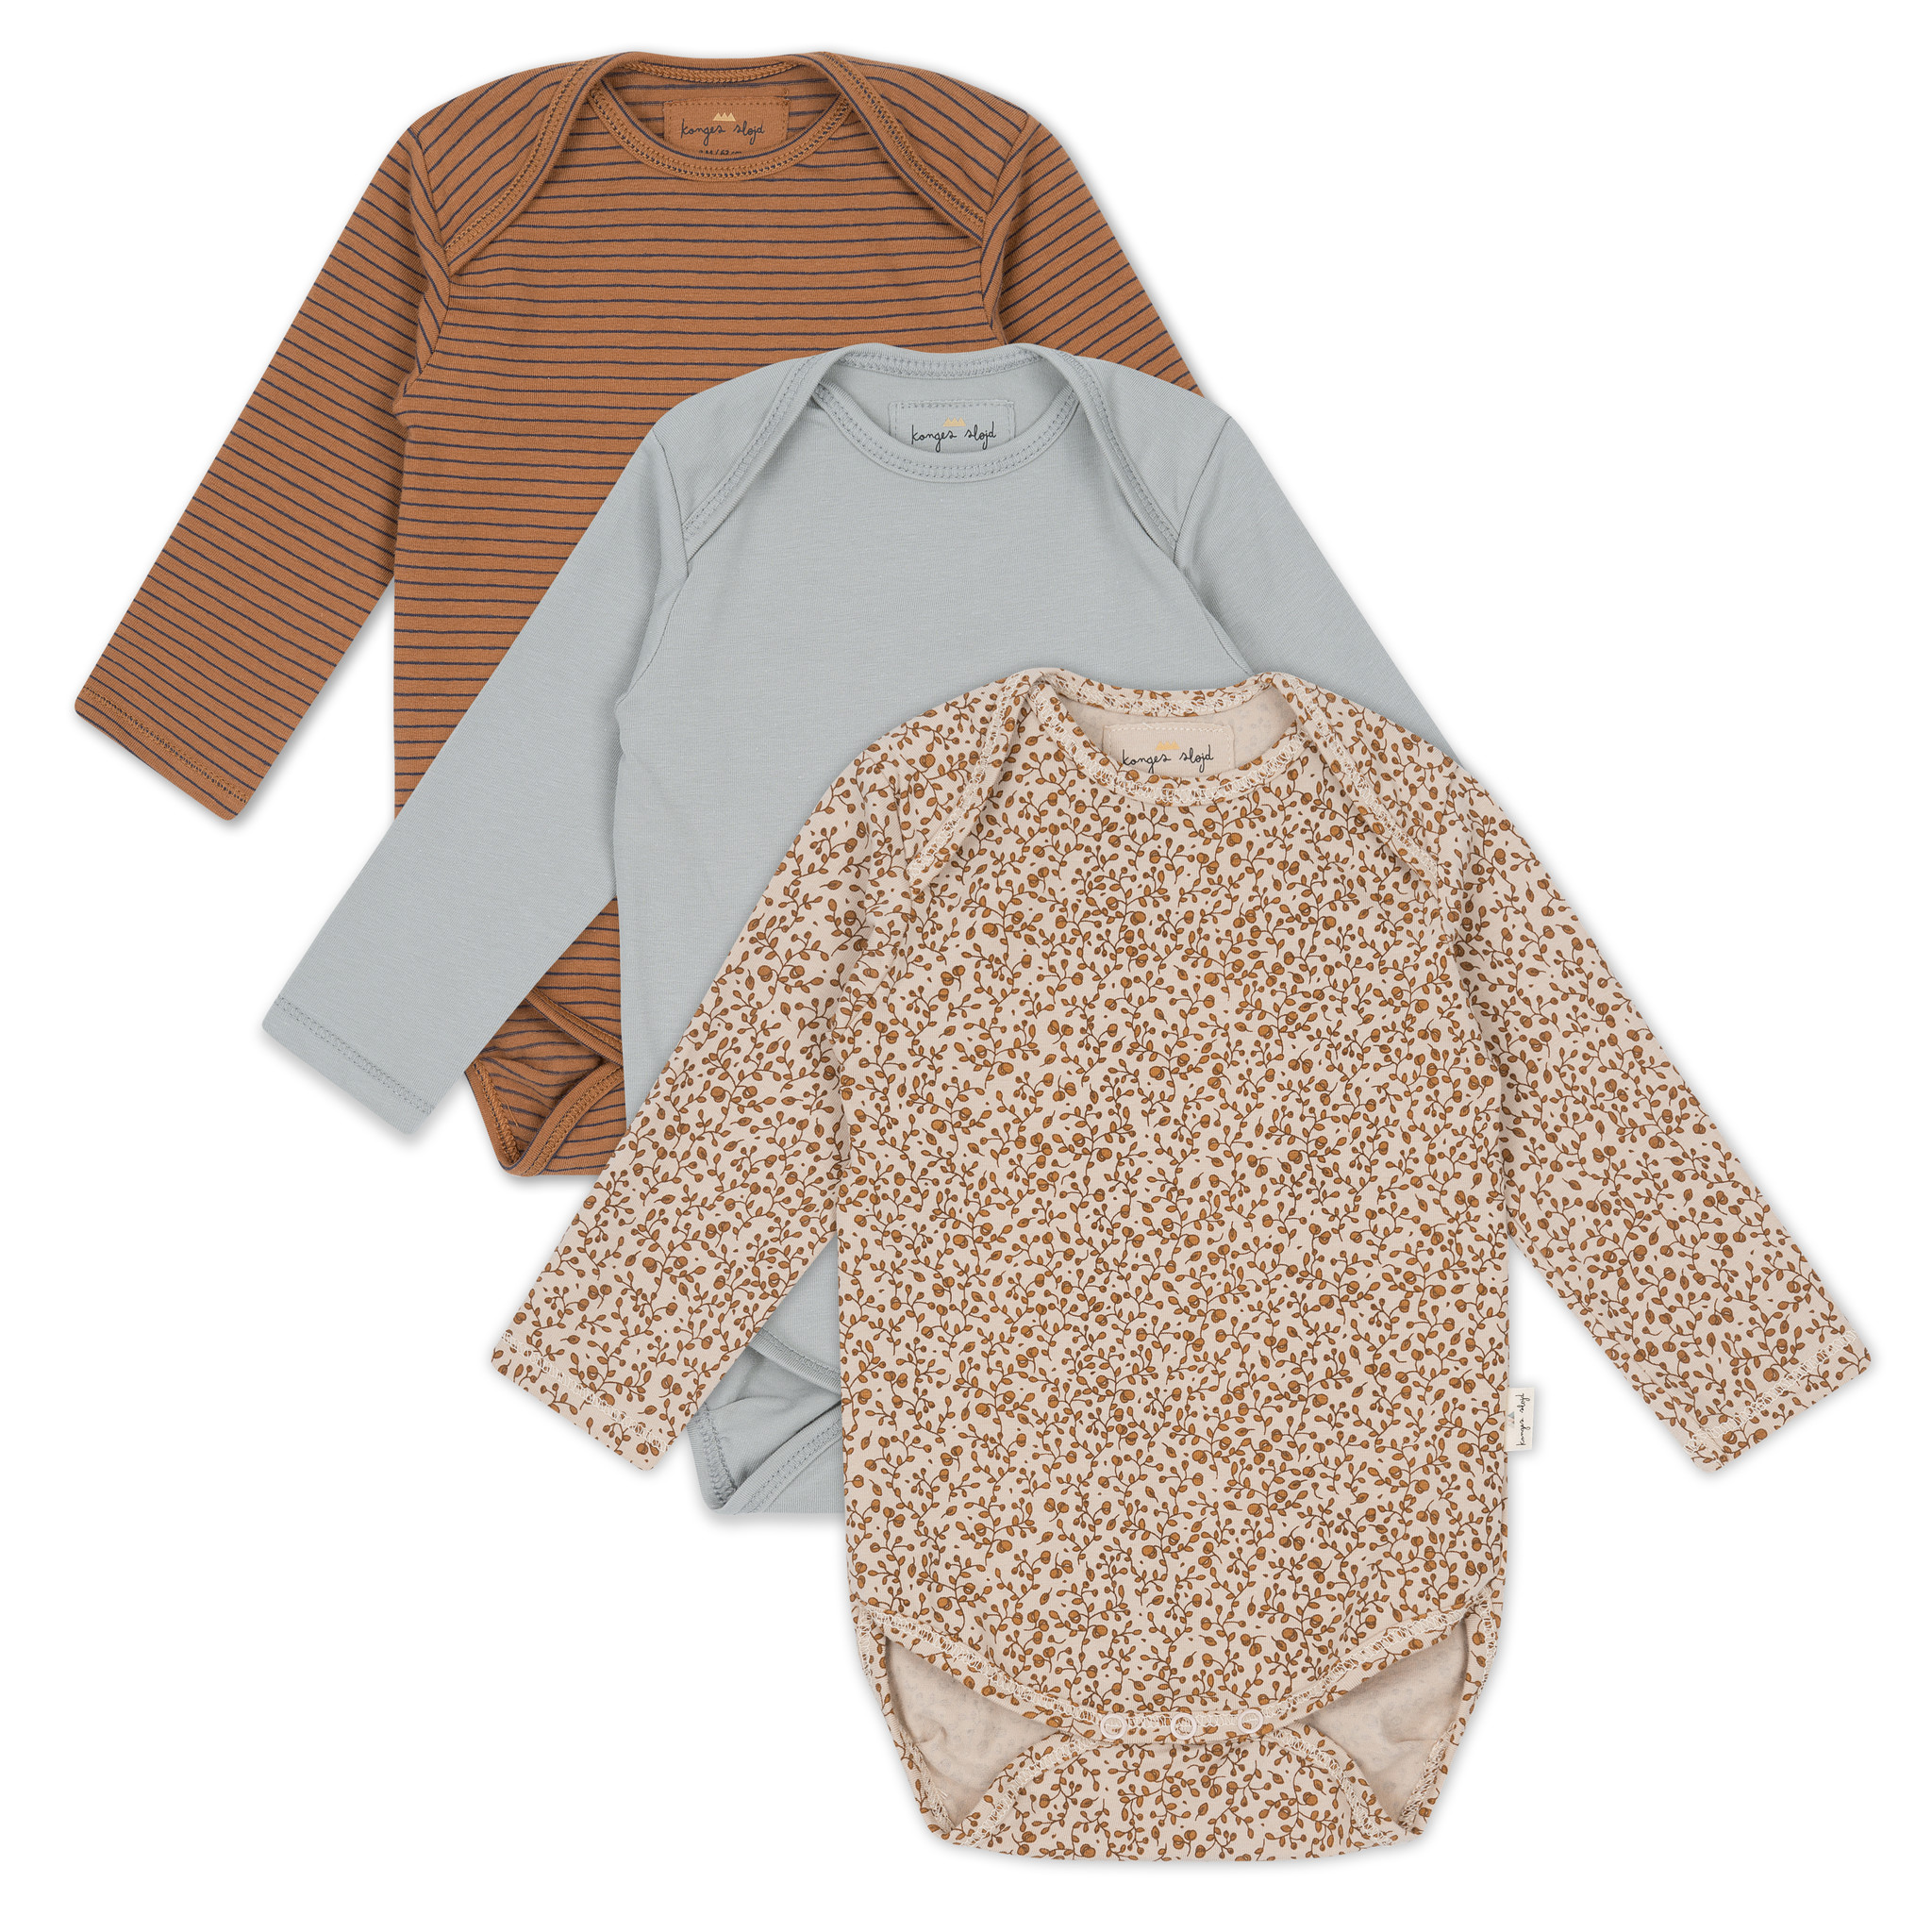 Konges Slojd 3 pack long sleeved bodies - 95% organic cotton - floral/blue/striped  brown - 3m to 18m